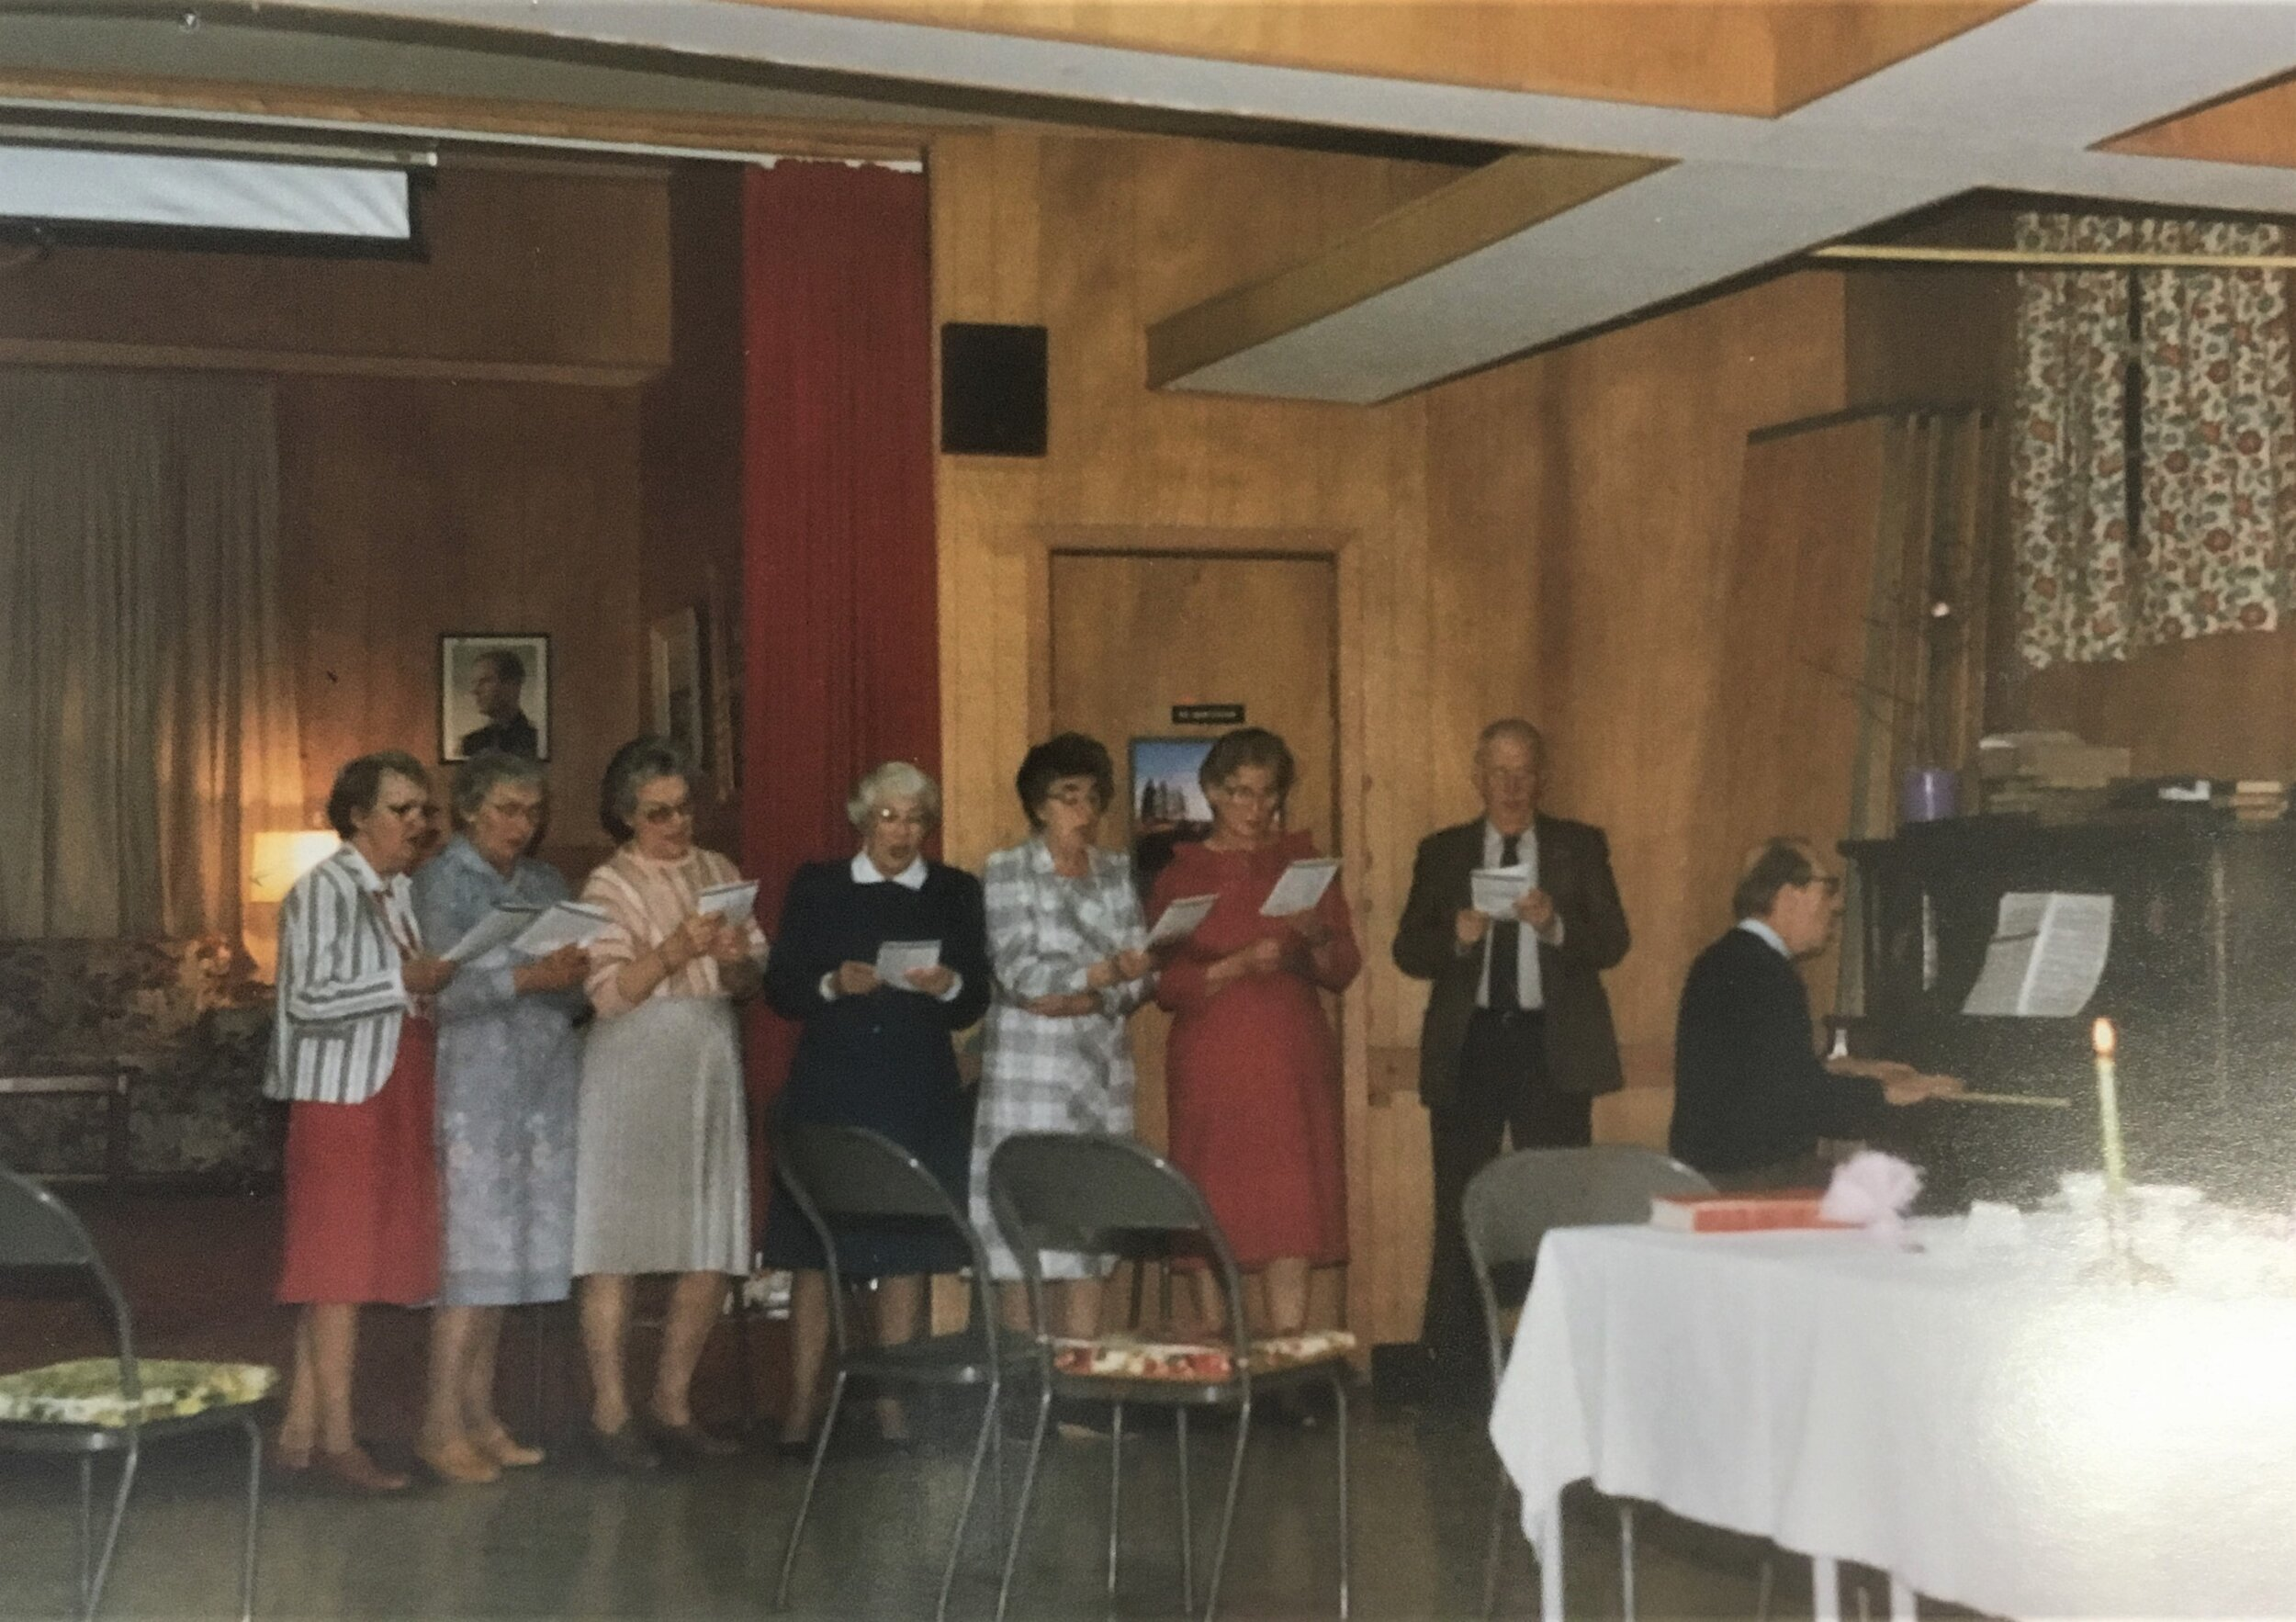 4. A Choir Party in the Crawford Park hall in 1985. Pictured, left to right: Jean Abbott, Mary McDowall, Hazel Long, Jean Gillebrand, Marg Bowker, Louise Smith, Cliff Gillebrand and Bill Bowker at the piano. Note that the stage, currently in use as our office, was set up as a sort of lounge, with photos of Queen Elizabeth and Prince Philip on the walls.